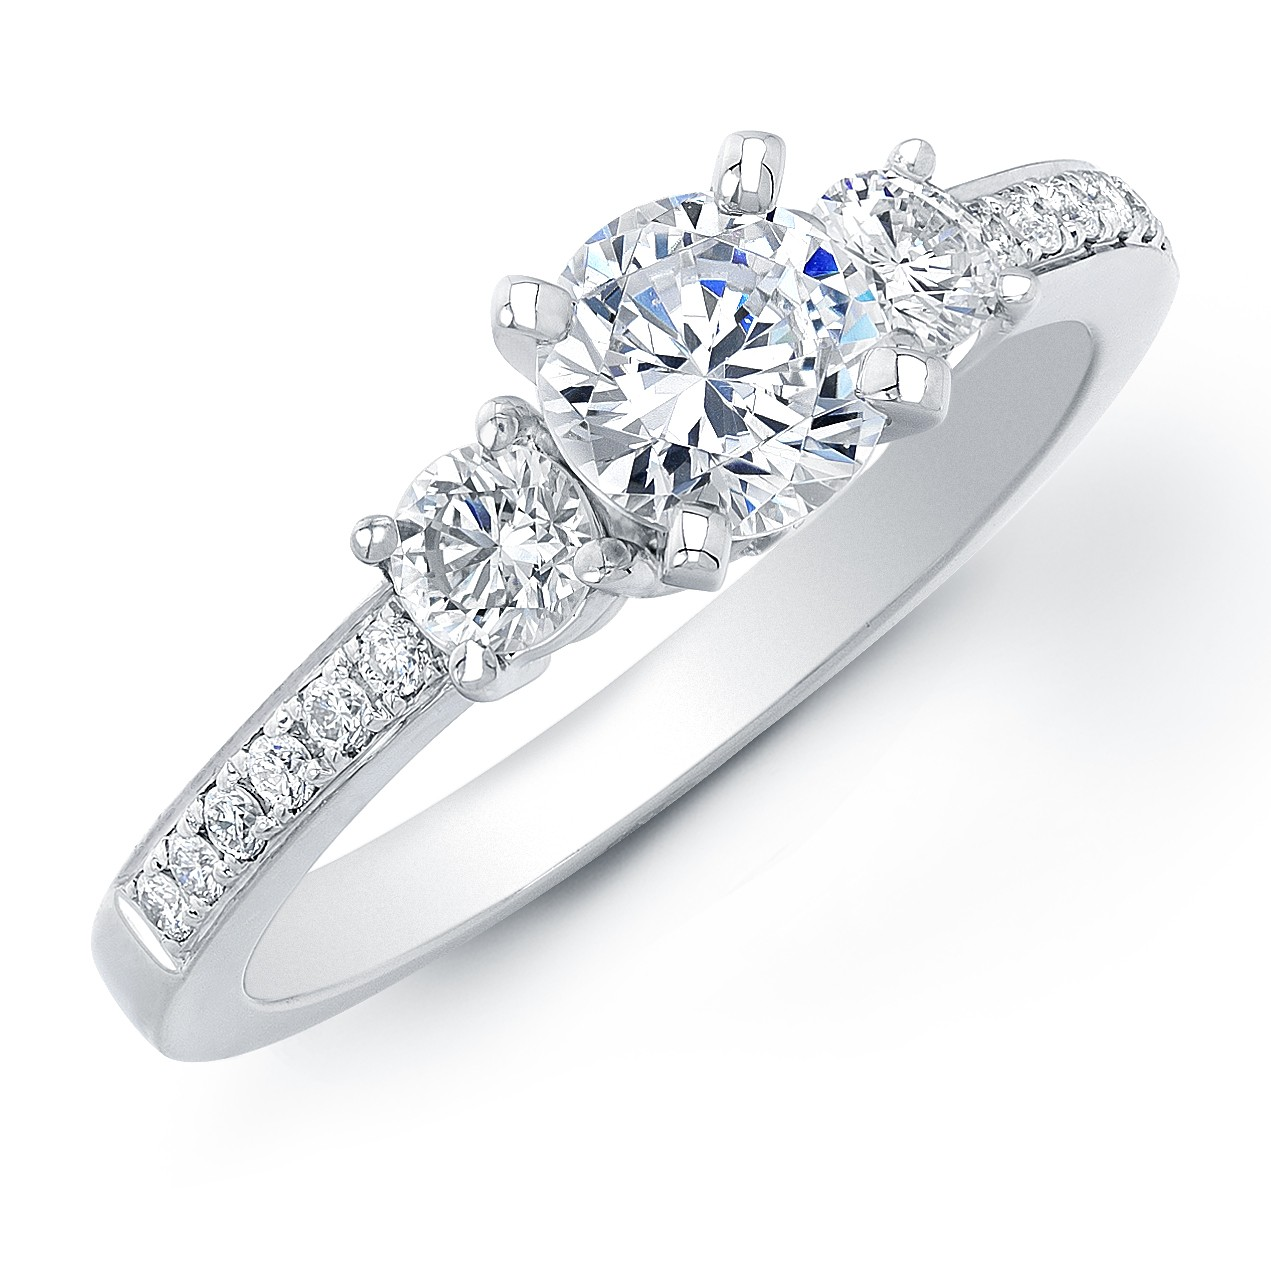 Kay jewelers engagement ring reviews